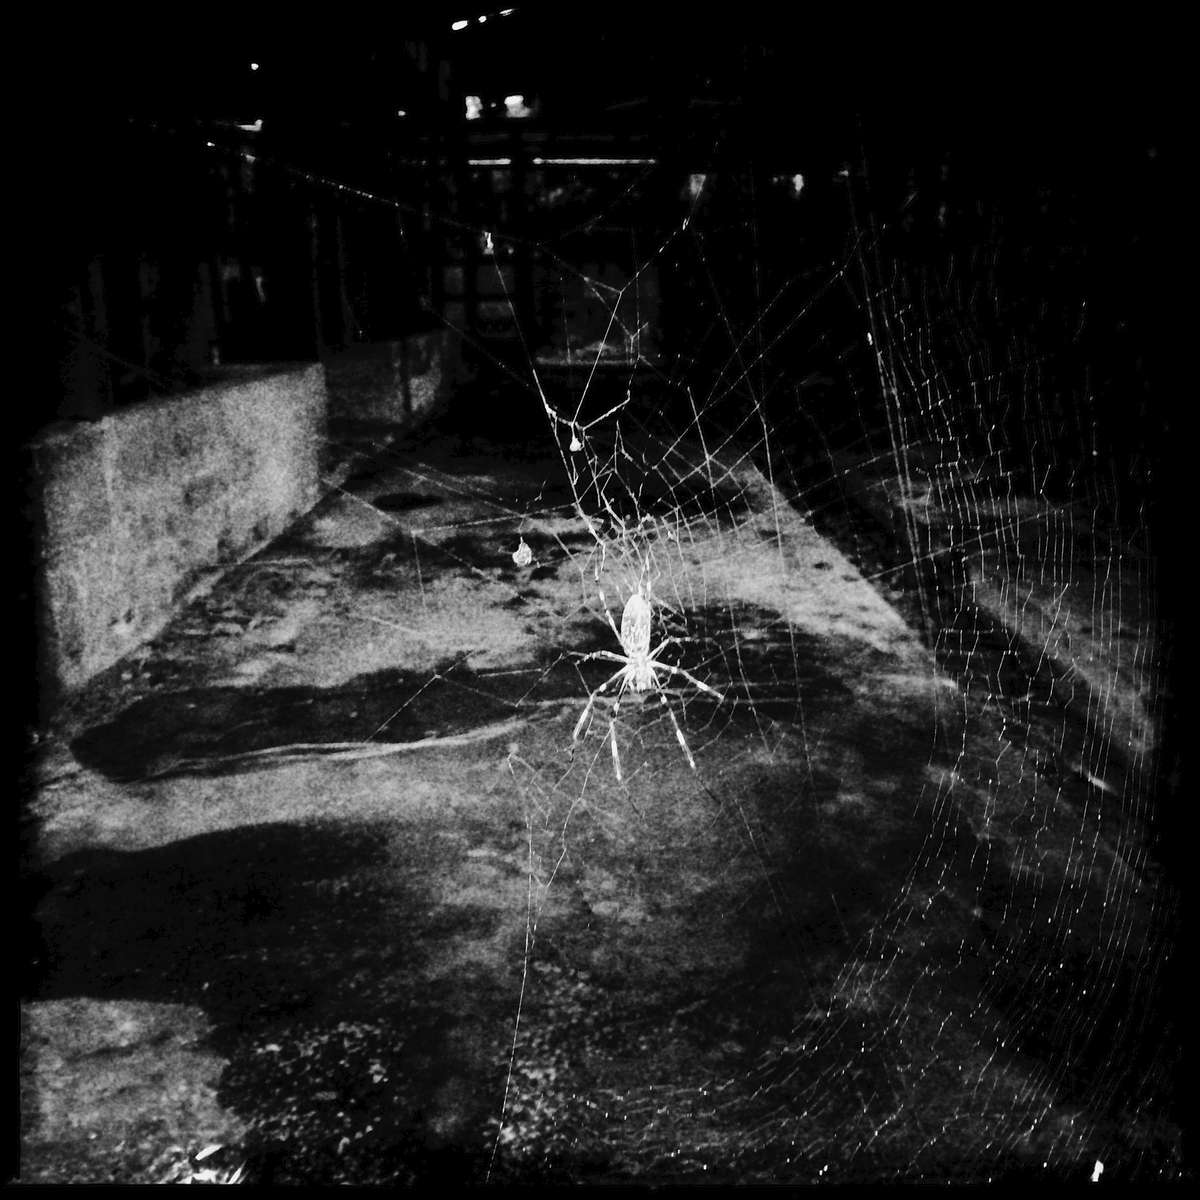 Radiation contaminated spider at an abandoned dairy farm. Nov/ 2014, Tsushima, Namie.